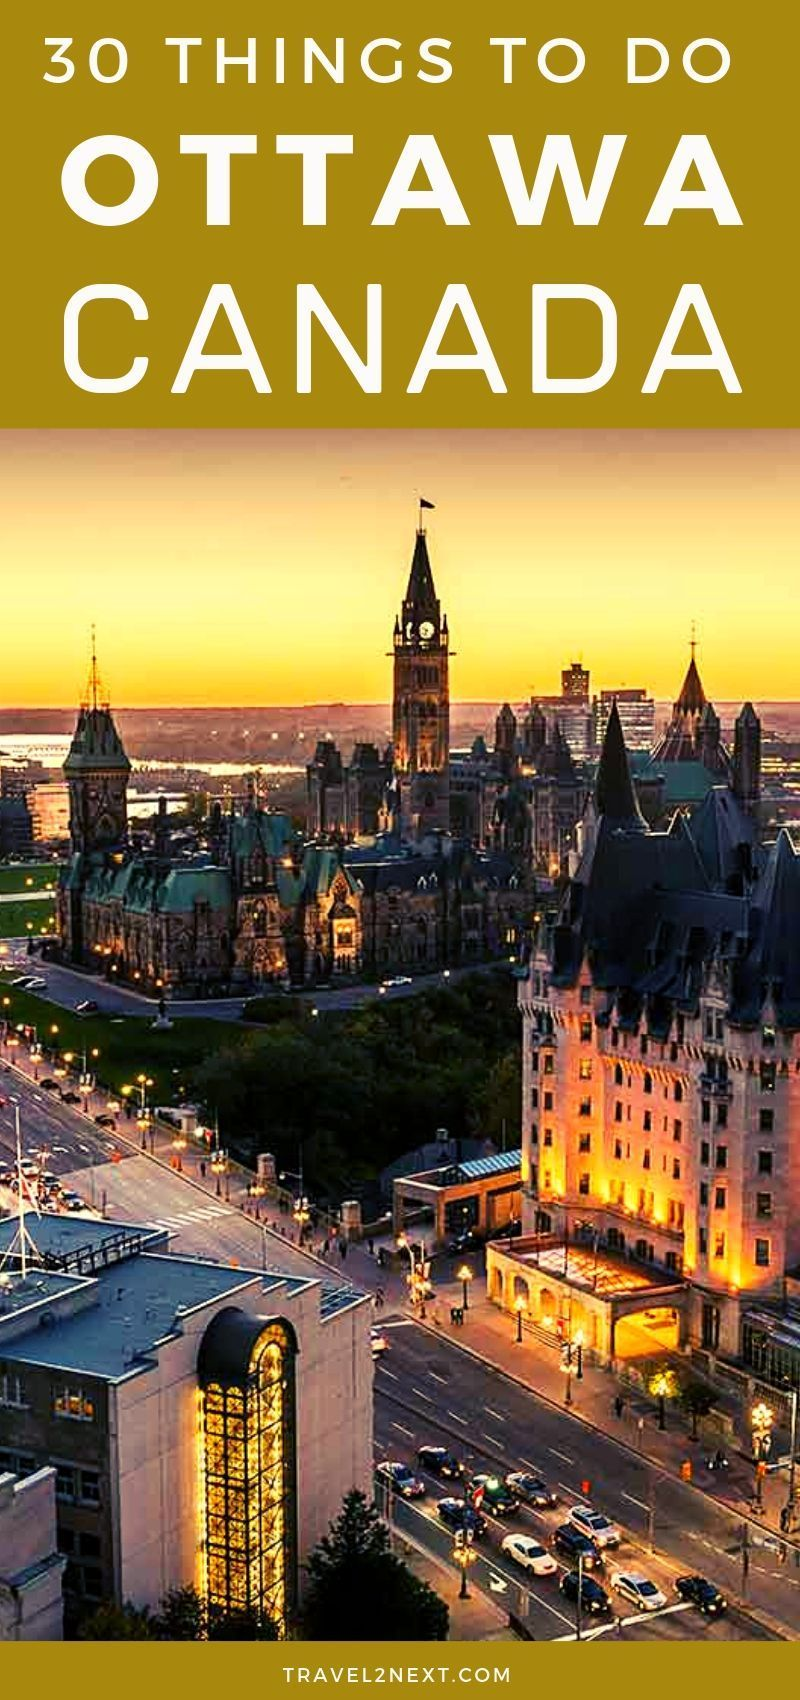 30 Fantastic Things To Do In Ottawa With Images Tourist